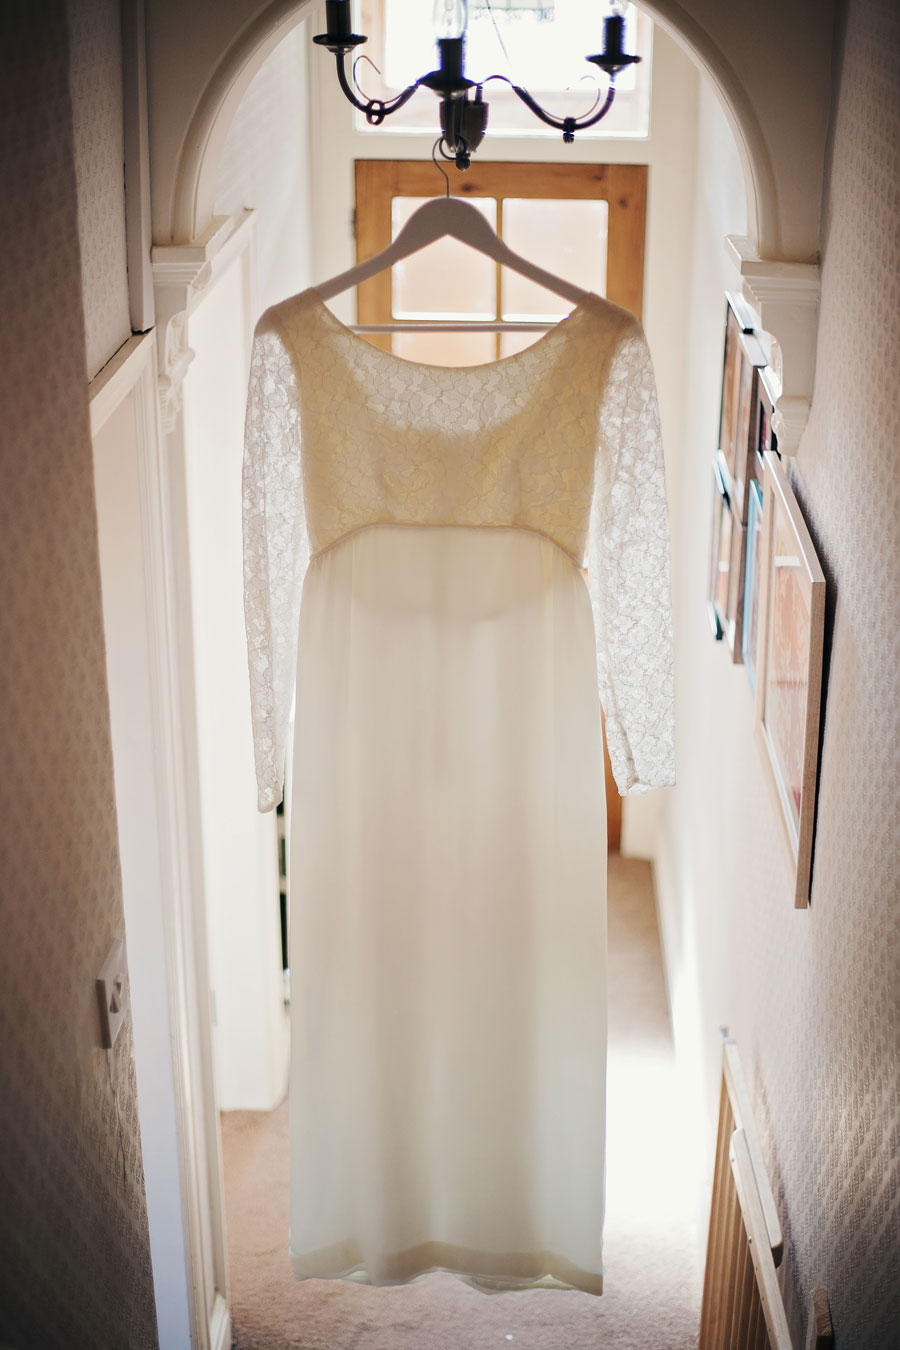 the dress hanging up - wedding photography Lancashire